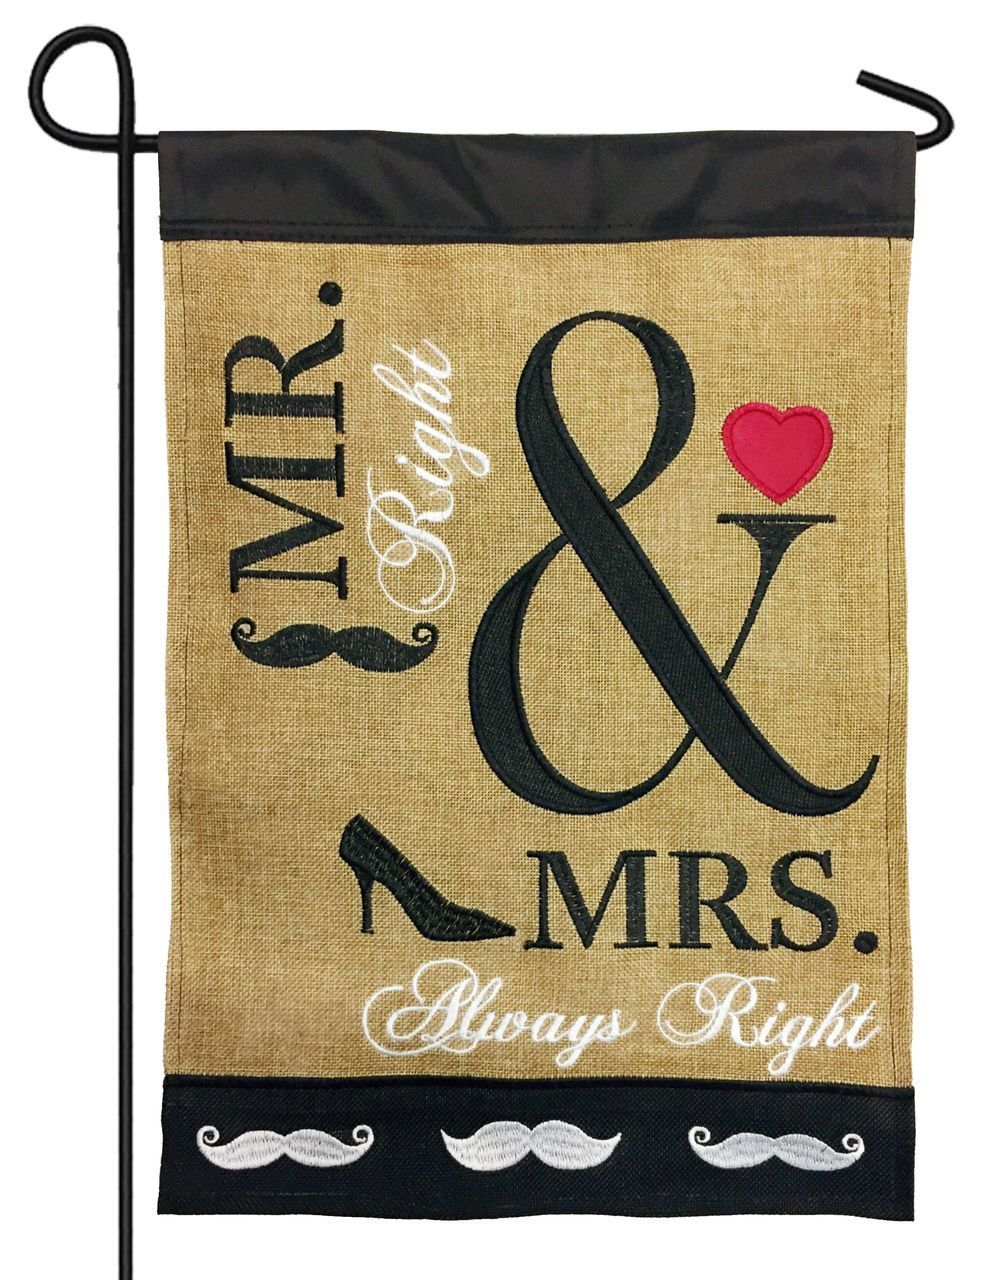 Burlap Mrs. Always Right Double Applique Garden Flag - All Decorative Flags/Themes/Special Occasion Flags - I AmEricas Flags